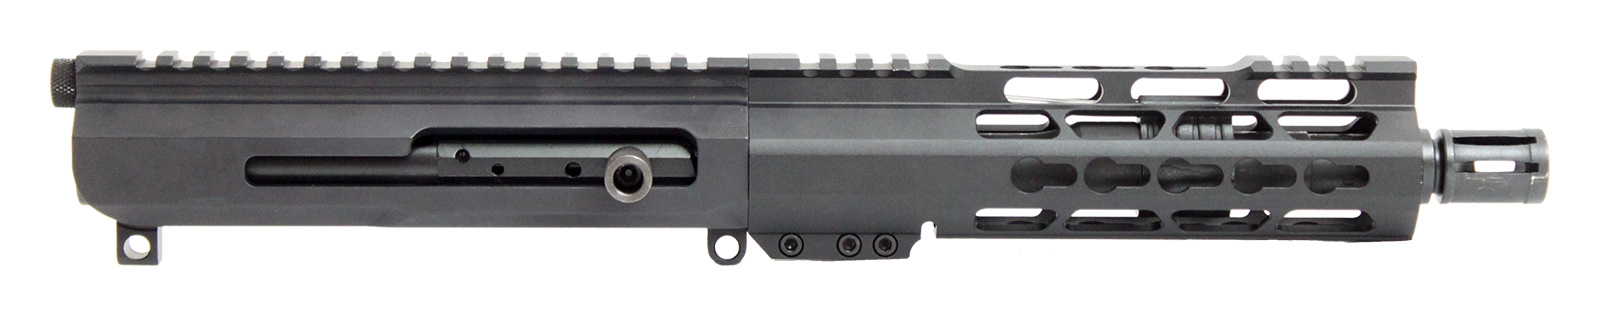 AR15 Complete Upper Assembly – 7 5 Inch /  223 Wylde / Side Charge / Keymod  / 160016